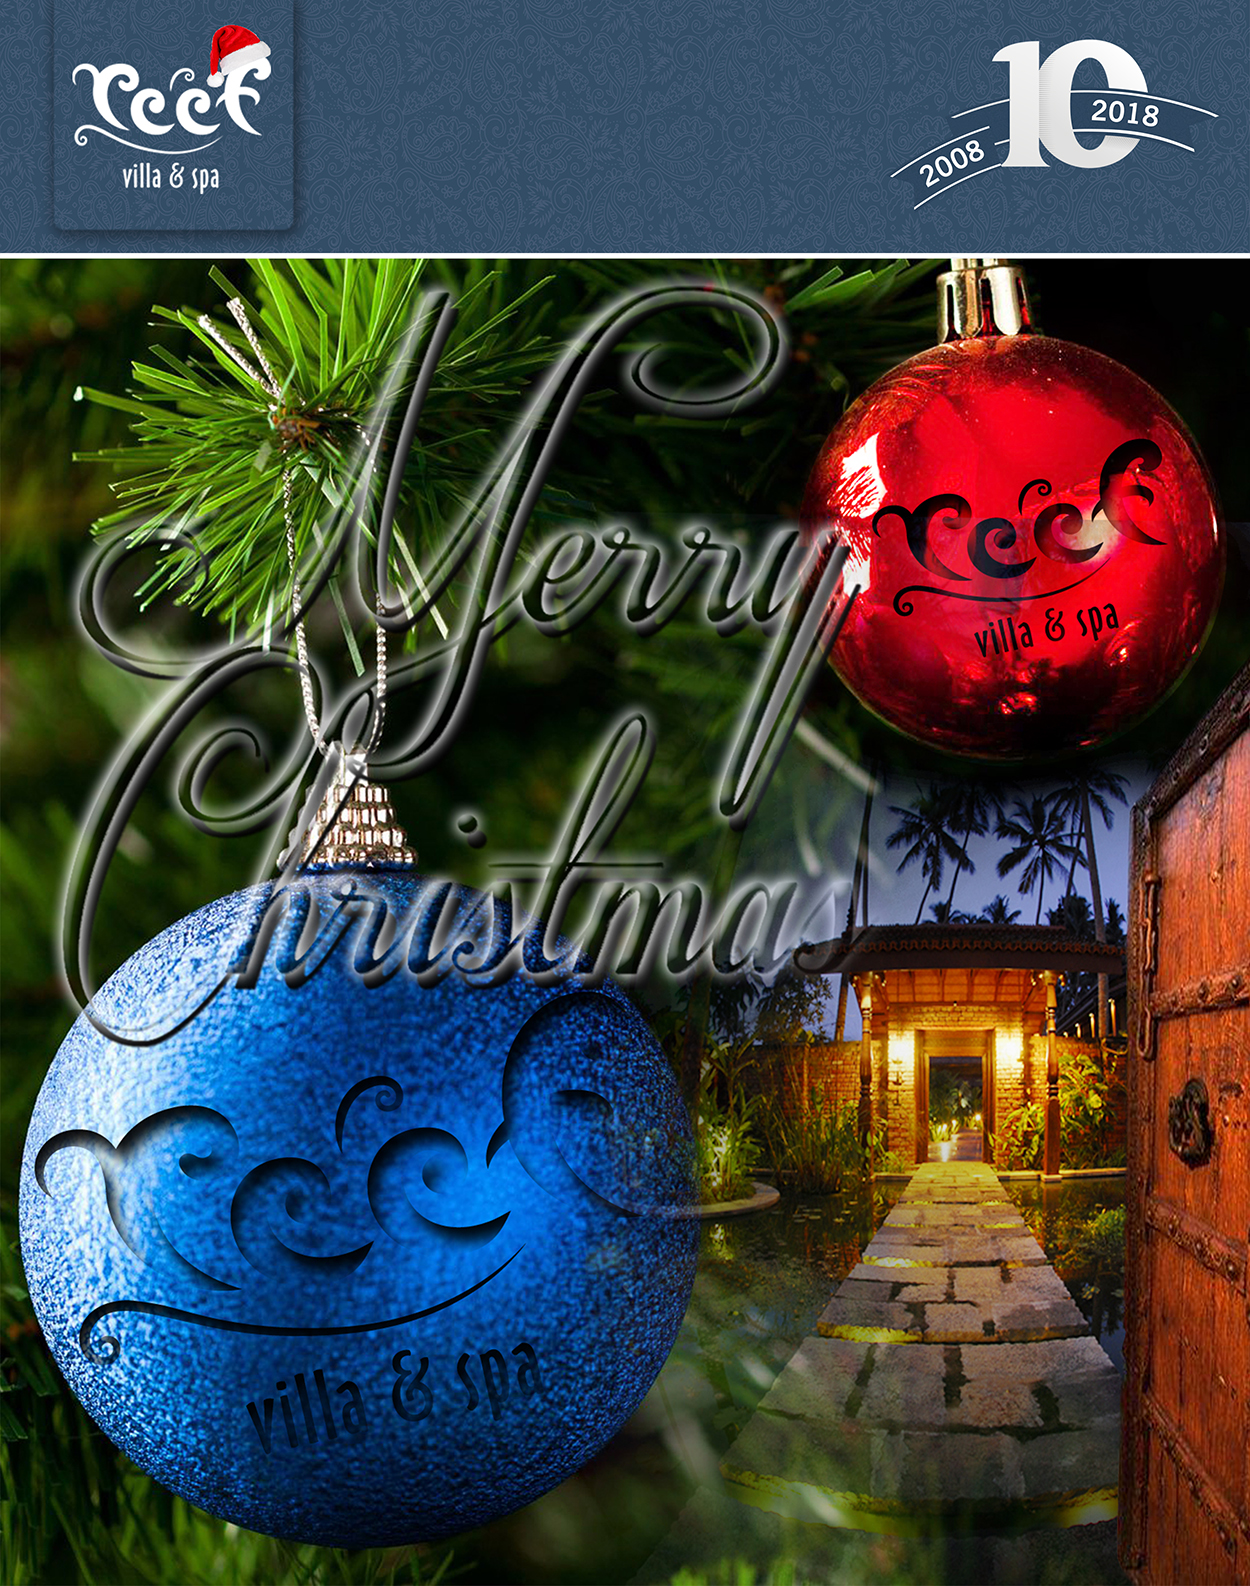 Happy Christmas 2017 from Reef Villa & Spa